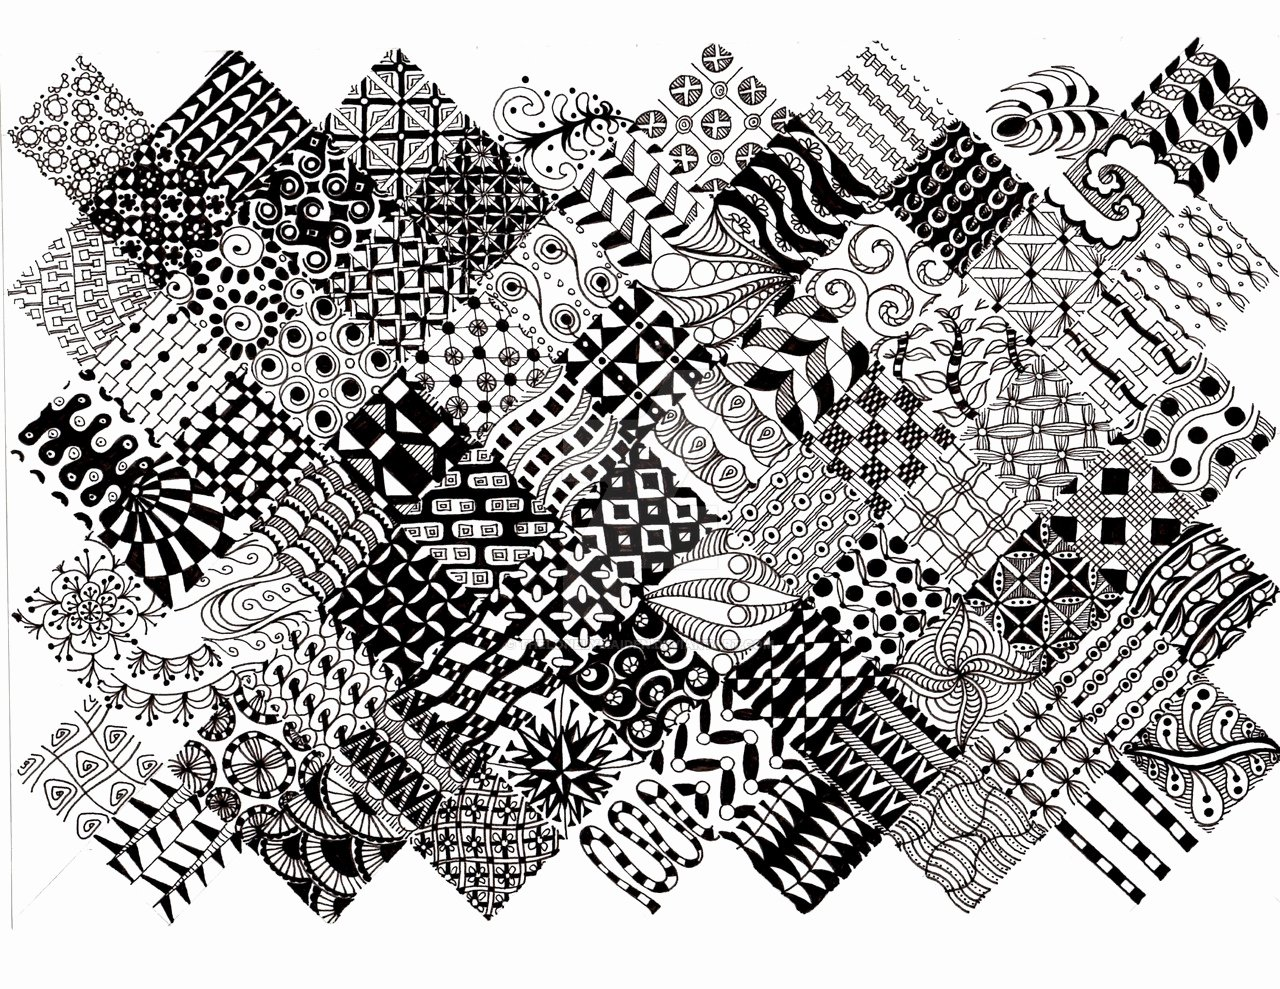 Zentangle Patterns to Print Luxury Easy Zentangle Patterns for Beginners